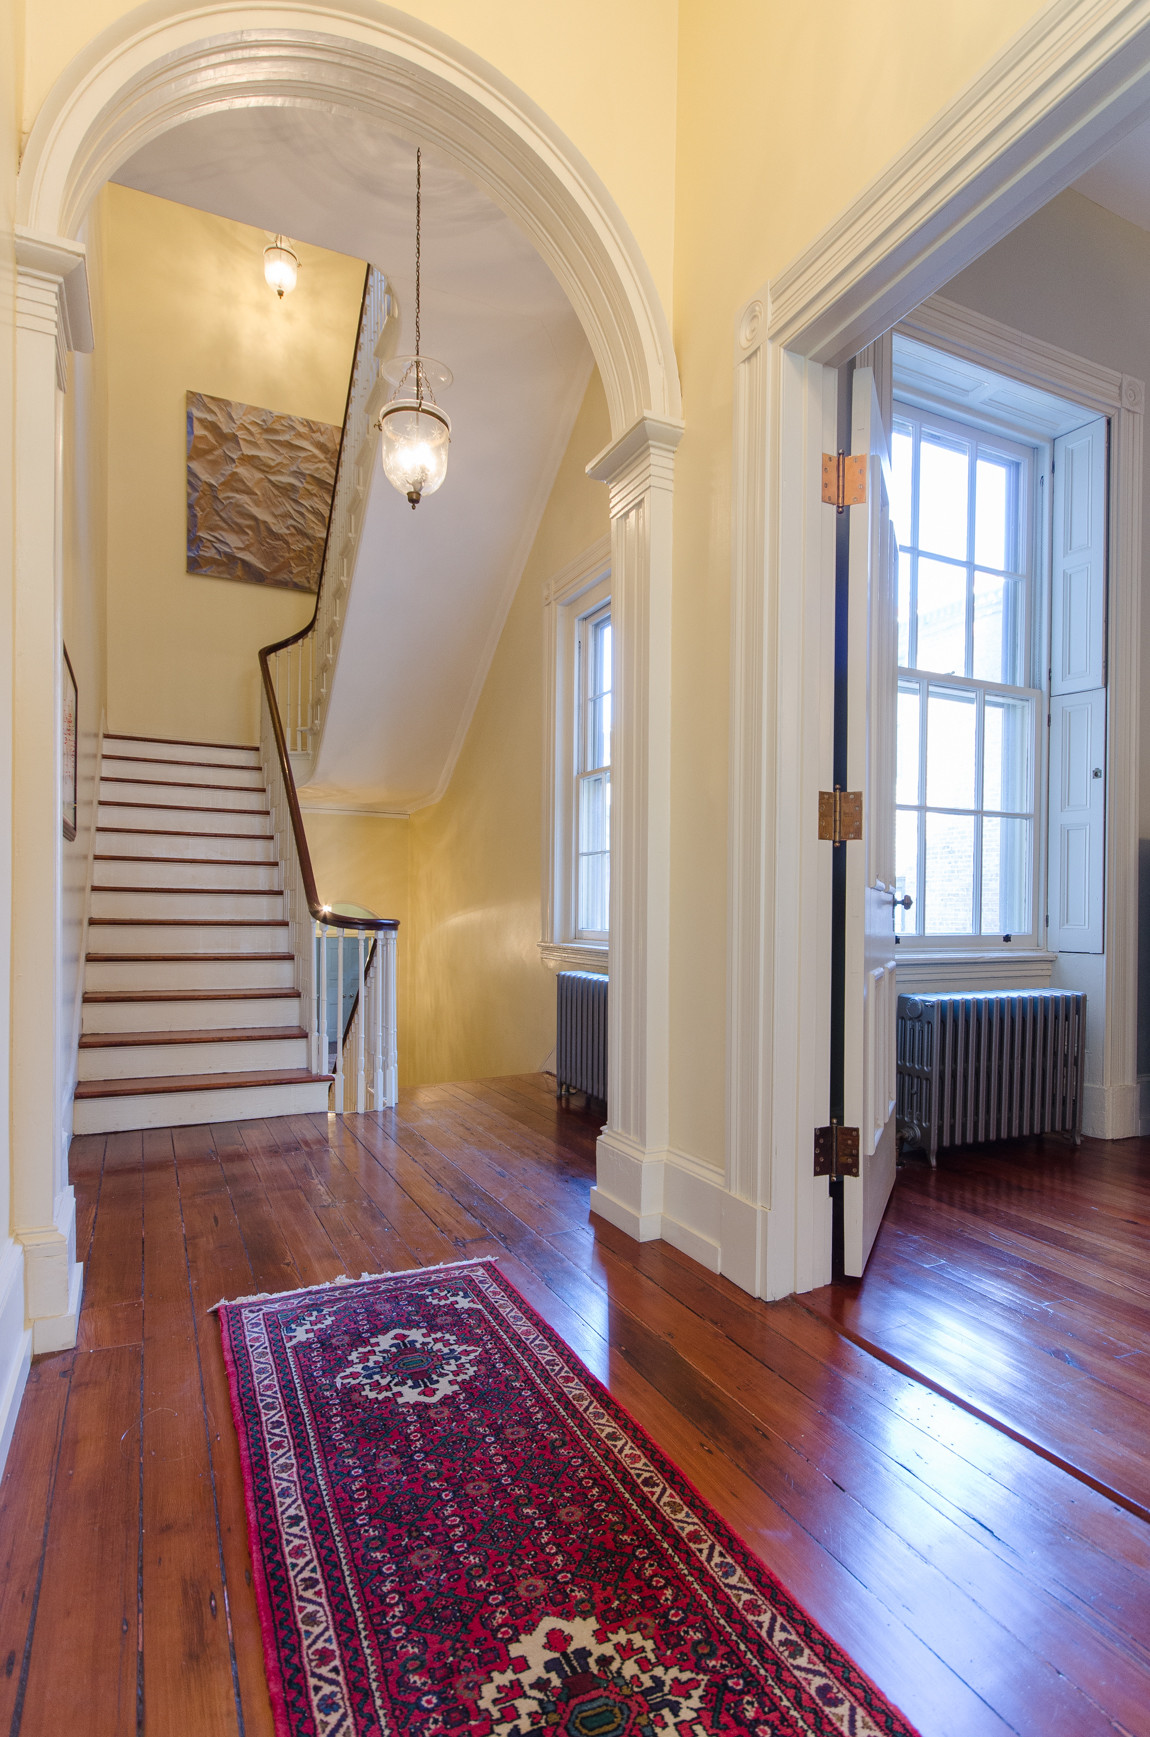 discount hardwood floors and molding los angeles of historic society hill mansion with george washington ties asks 2 65 pertaining to 1 of 28